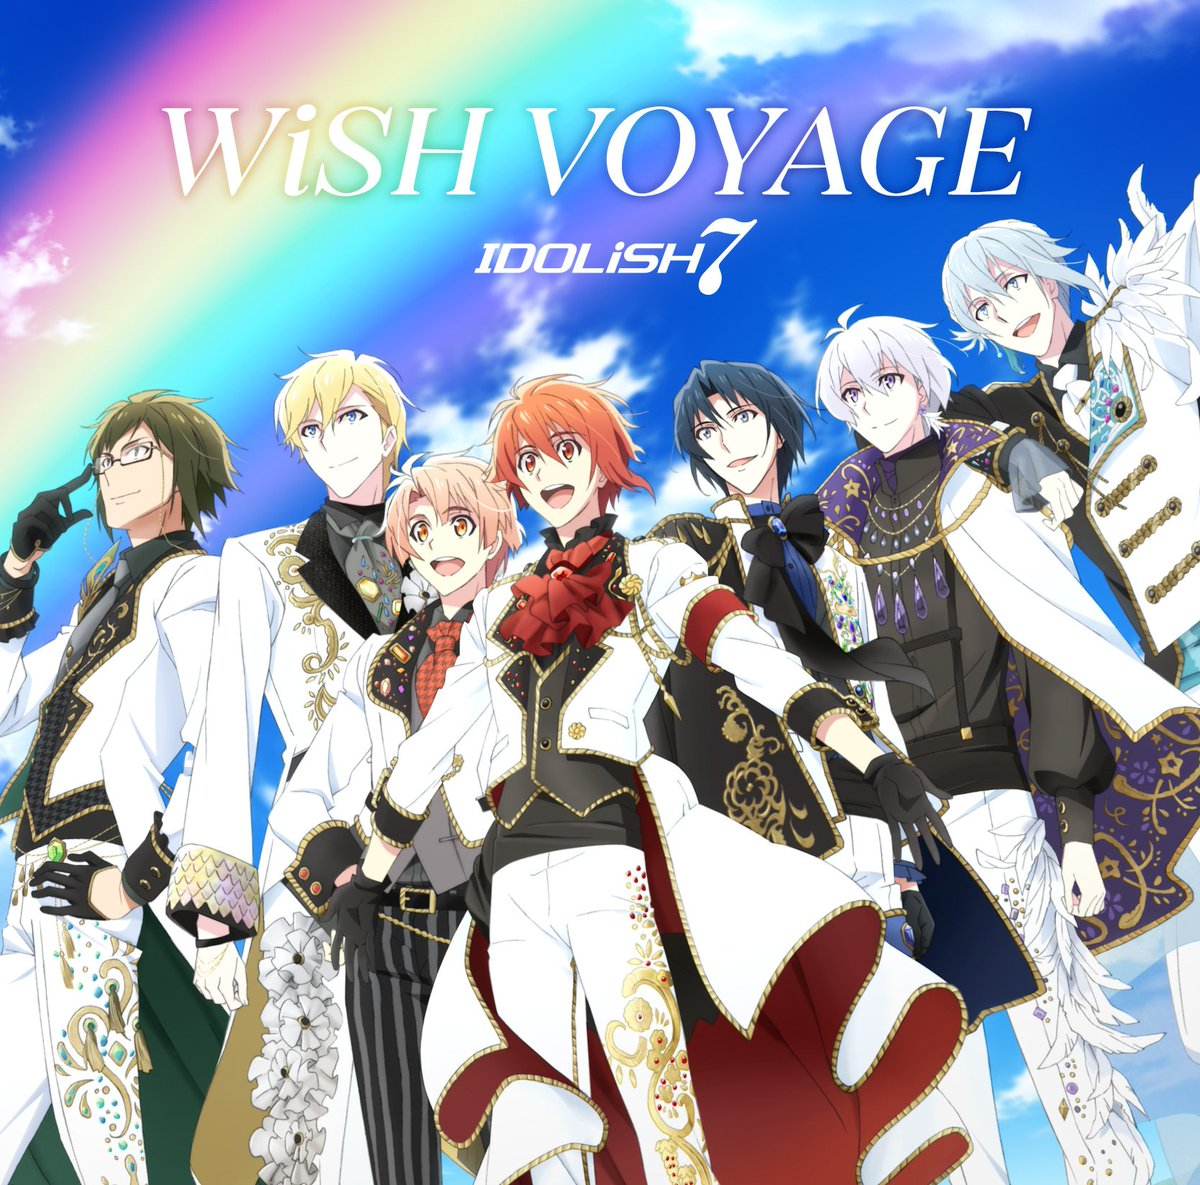 IDOLiSH7 – WiSH VOYAGE